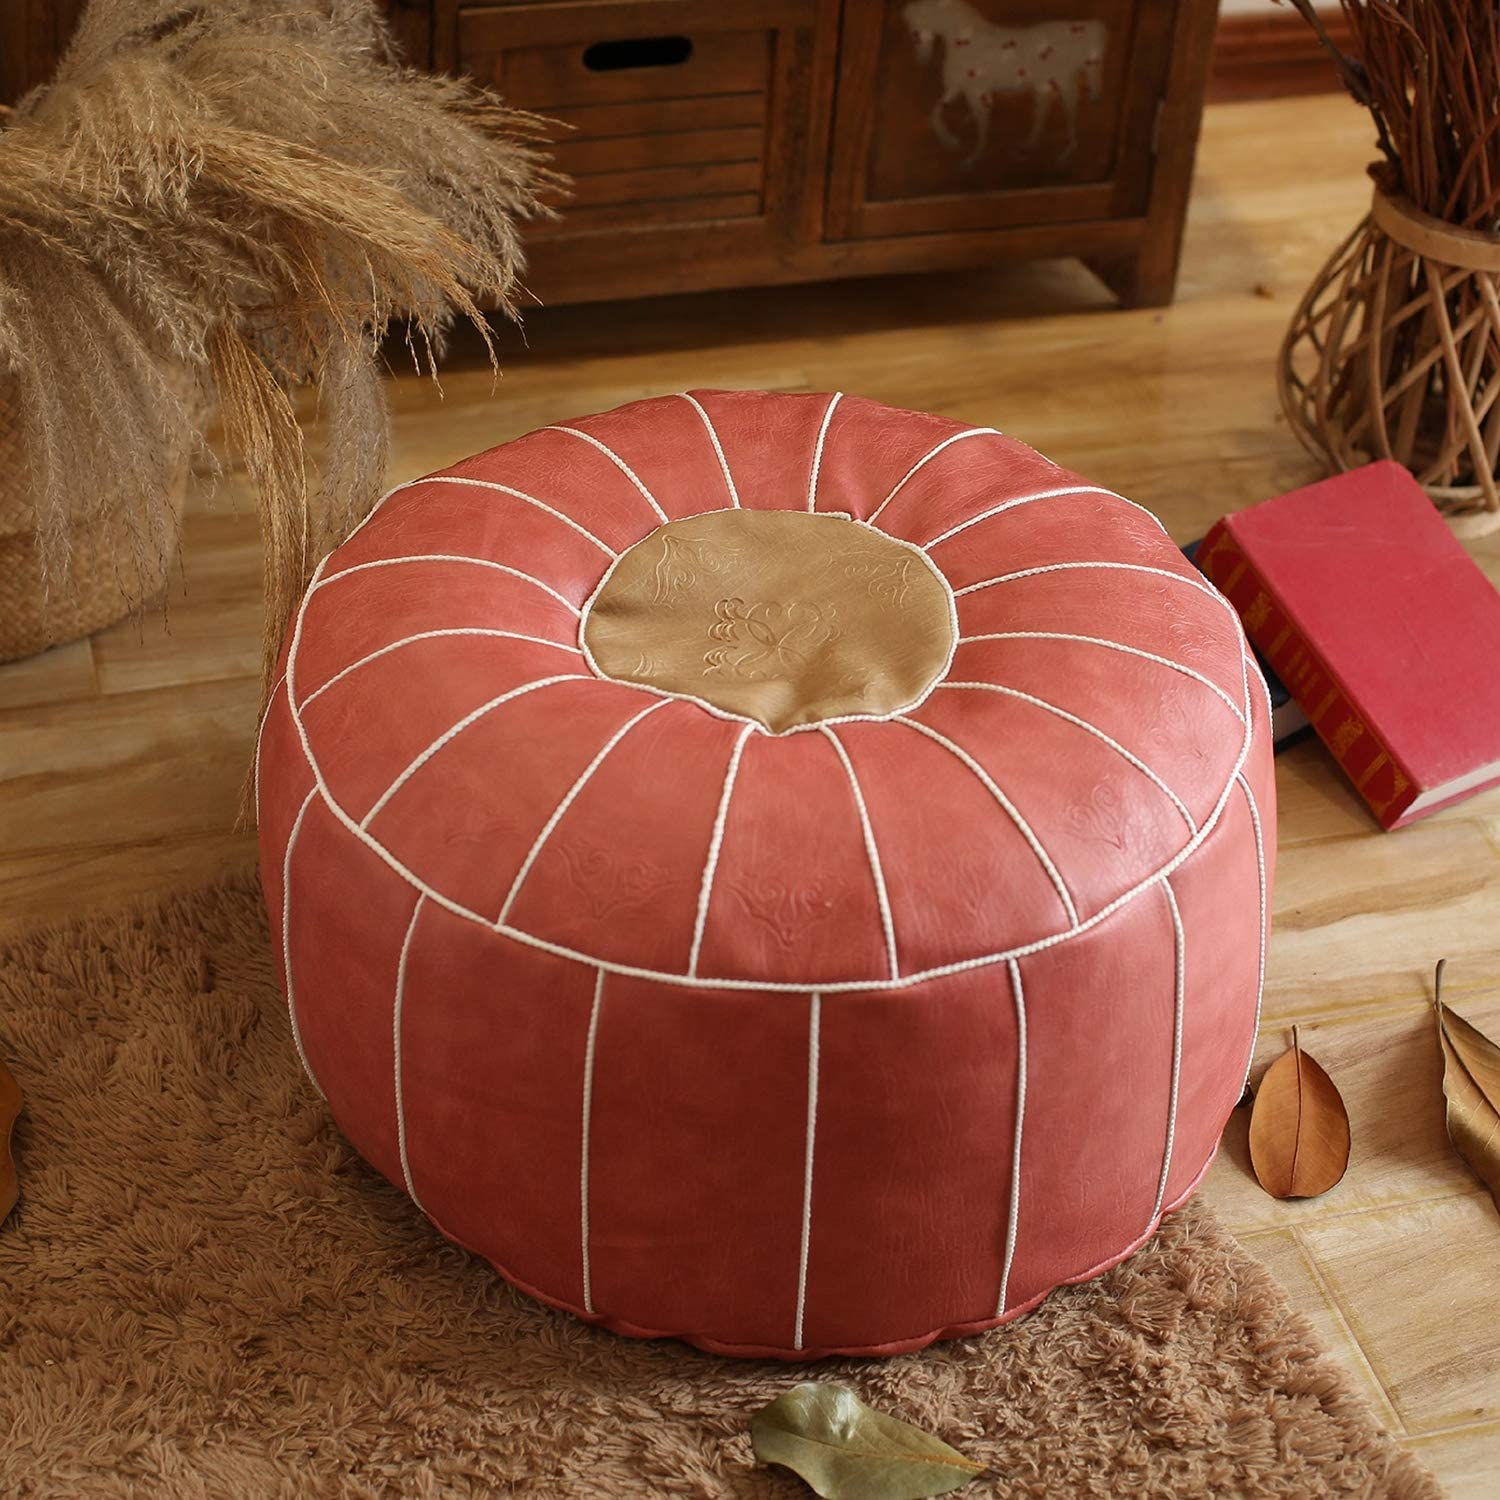 Leather Moroccan Pouf,Handmade Stuffed Embroidered Ottoman Footstool Home Decor Round Floor Cushion for Living Room Cafe-Pink 60x60x30cm(24x24x12inch)